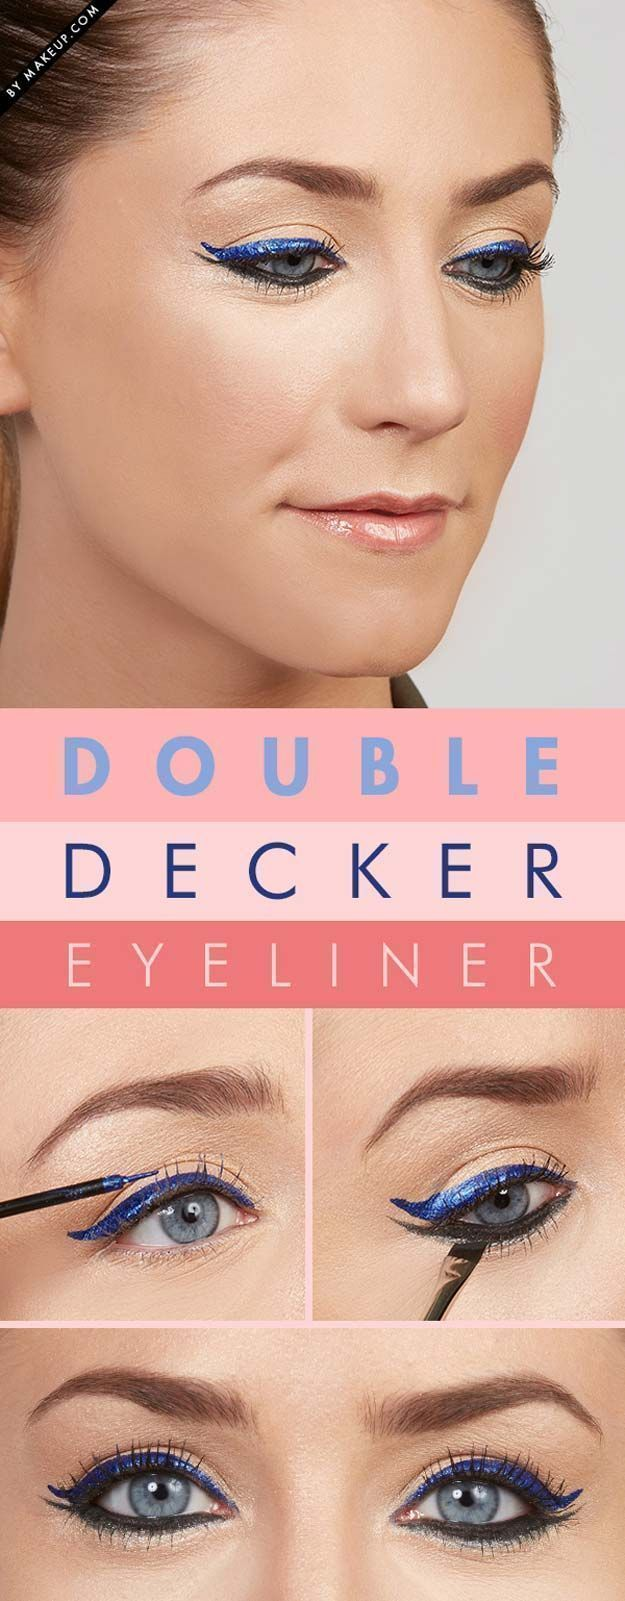 Winged Eyeliner Tutorials - Tuesday Tutorial: Double Decker Eyeliner- Easy Step By Step Tutorials For Beginners and Hacks Using Tape and a Spoon, Liquid Liner, Thing Pencil Tricks and Awesome Guides for Hooded Eyes - Short Video Tutorial for Perfect Simple Dramatic Looks - thegoddess.com/winged-eyeliner-tutorials #wingedlinereasy #wingedlinertricks #wingedlinersimple